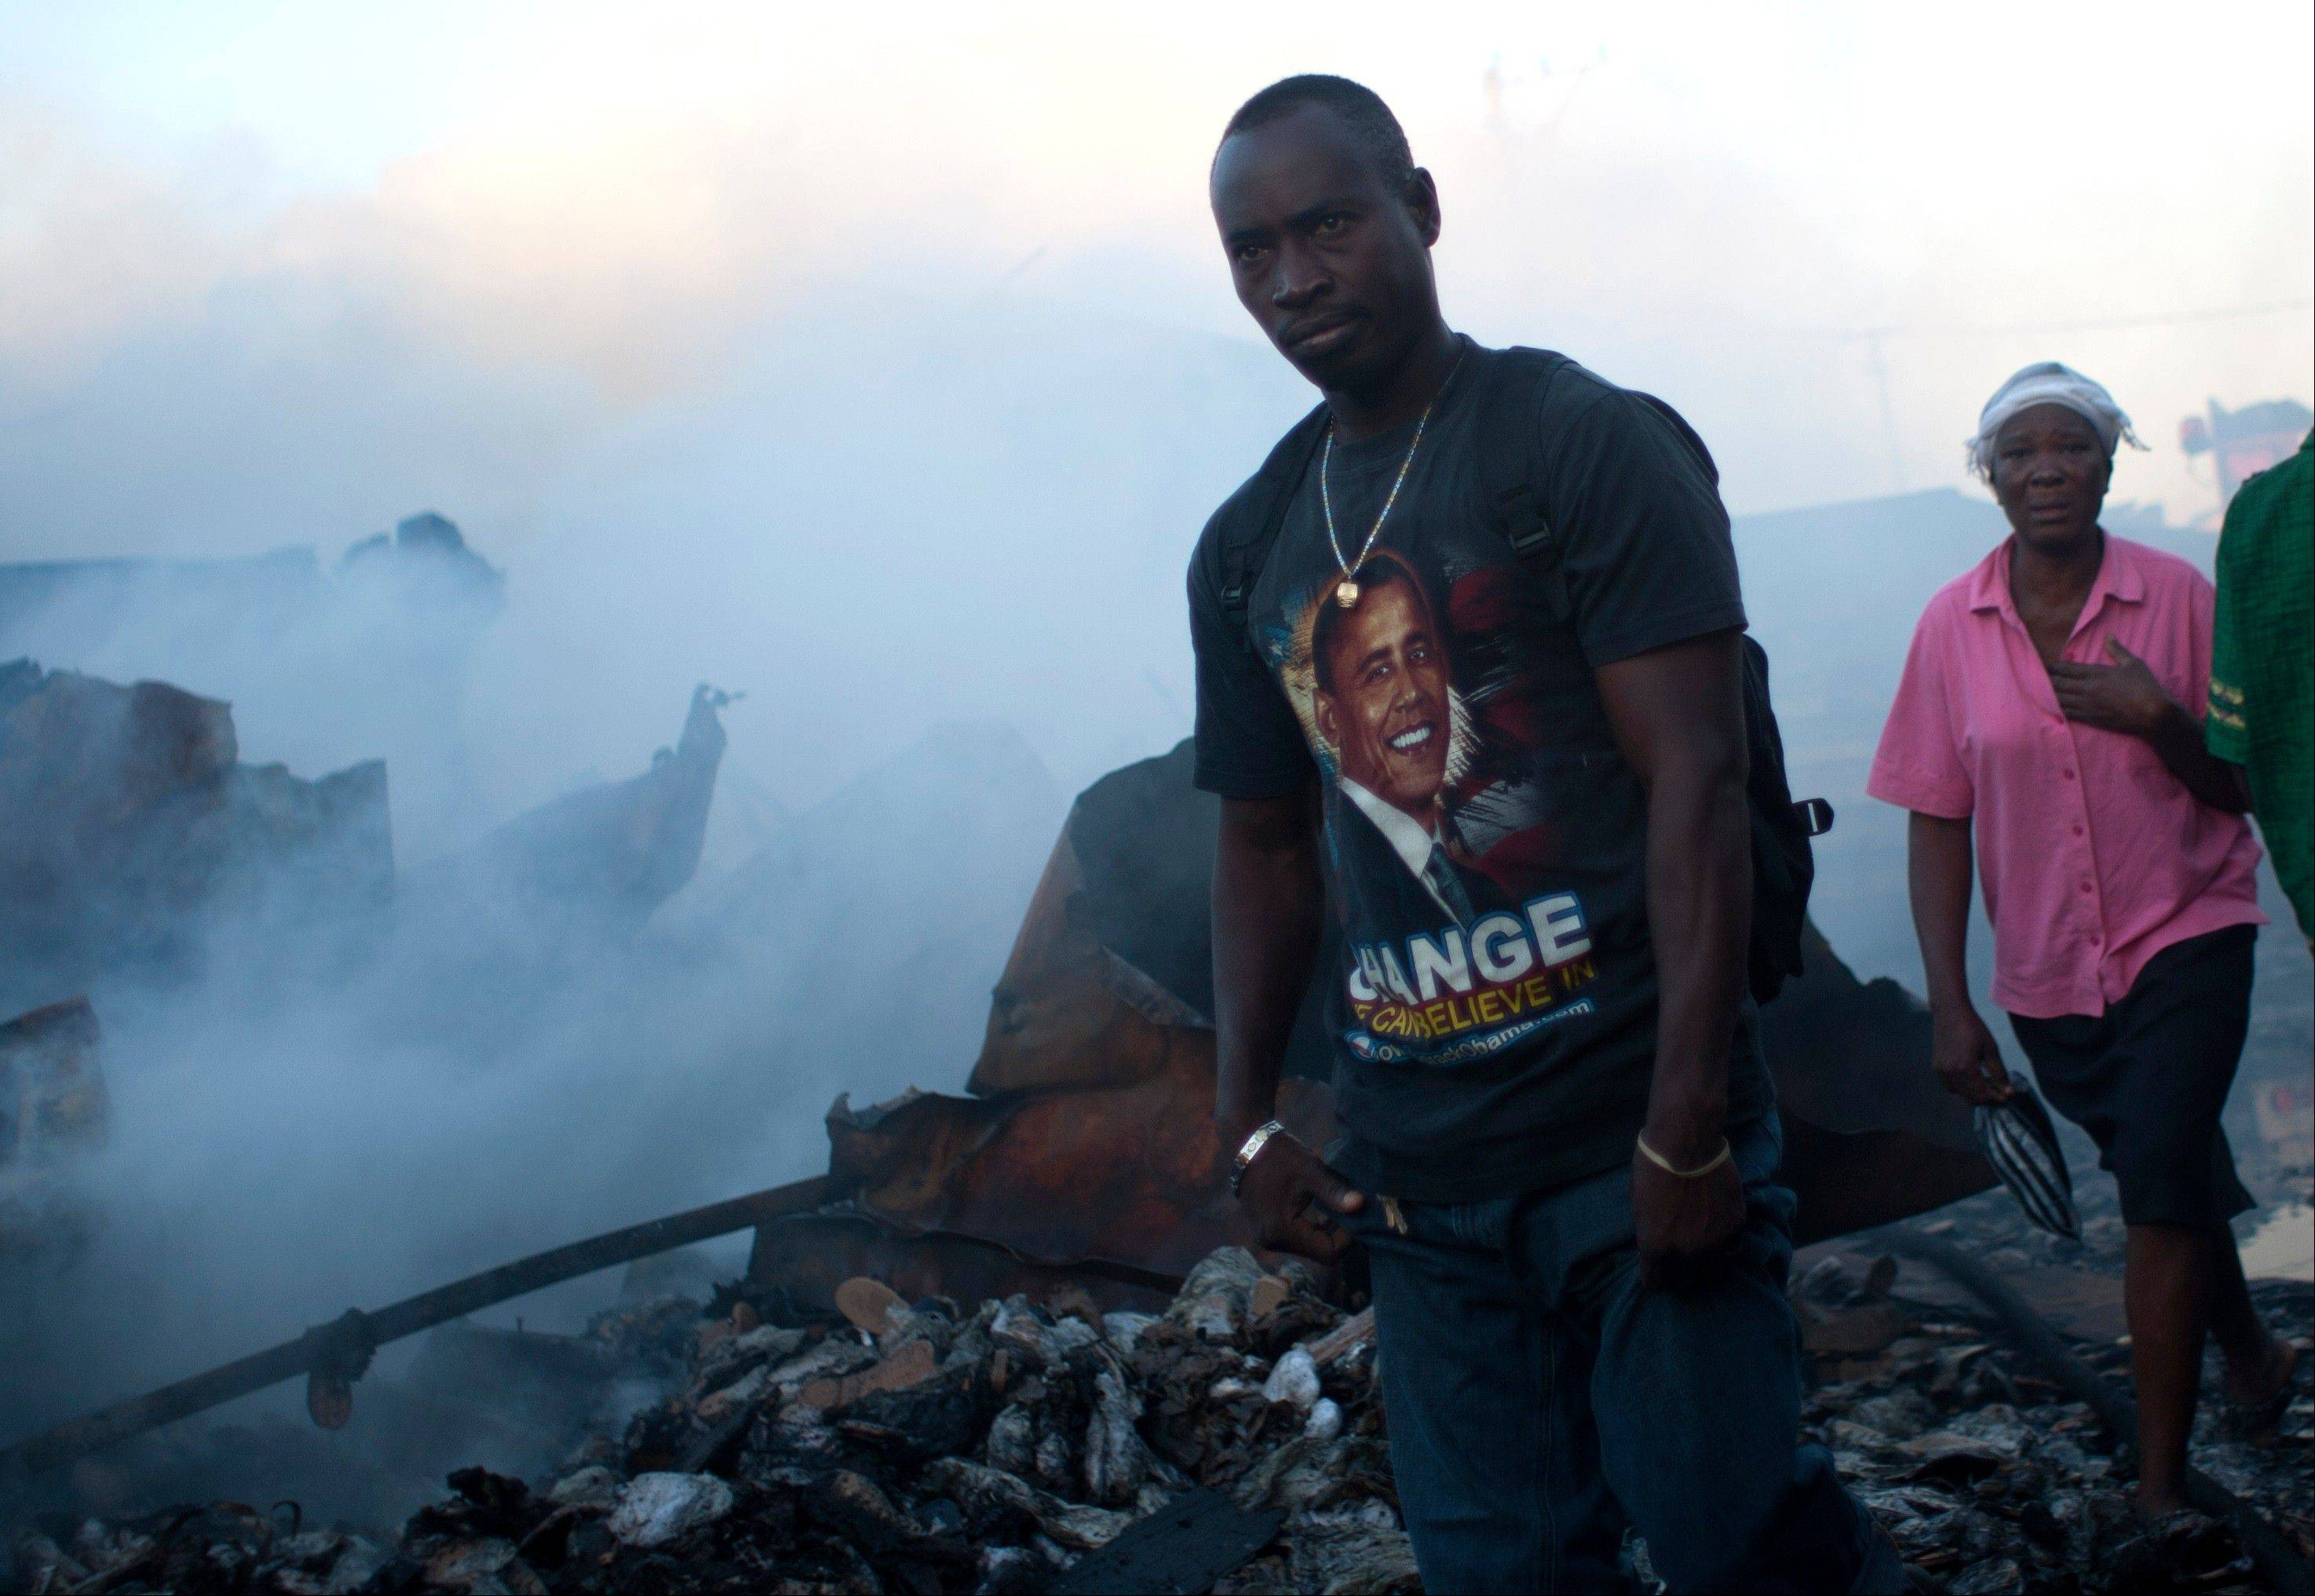 People walk by the remains of a market burned in an overnight fire in the Haitian capital�s Market District in Port-au-Prince, Haiti, Saturday, Dec. 29. The market is one of several that have burned over the past year.